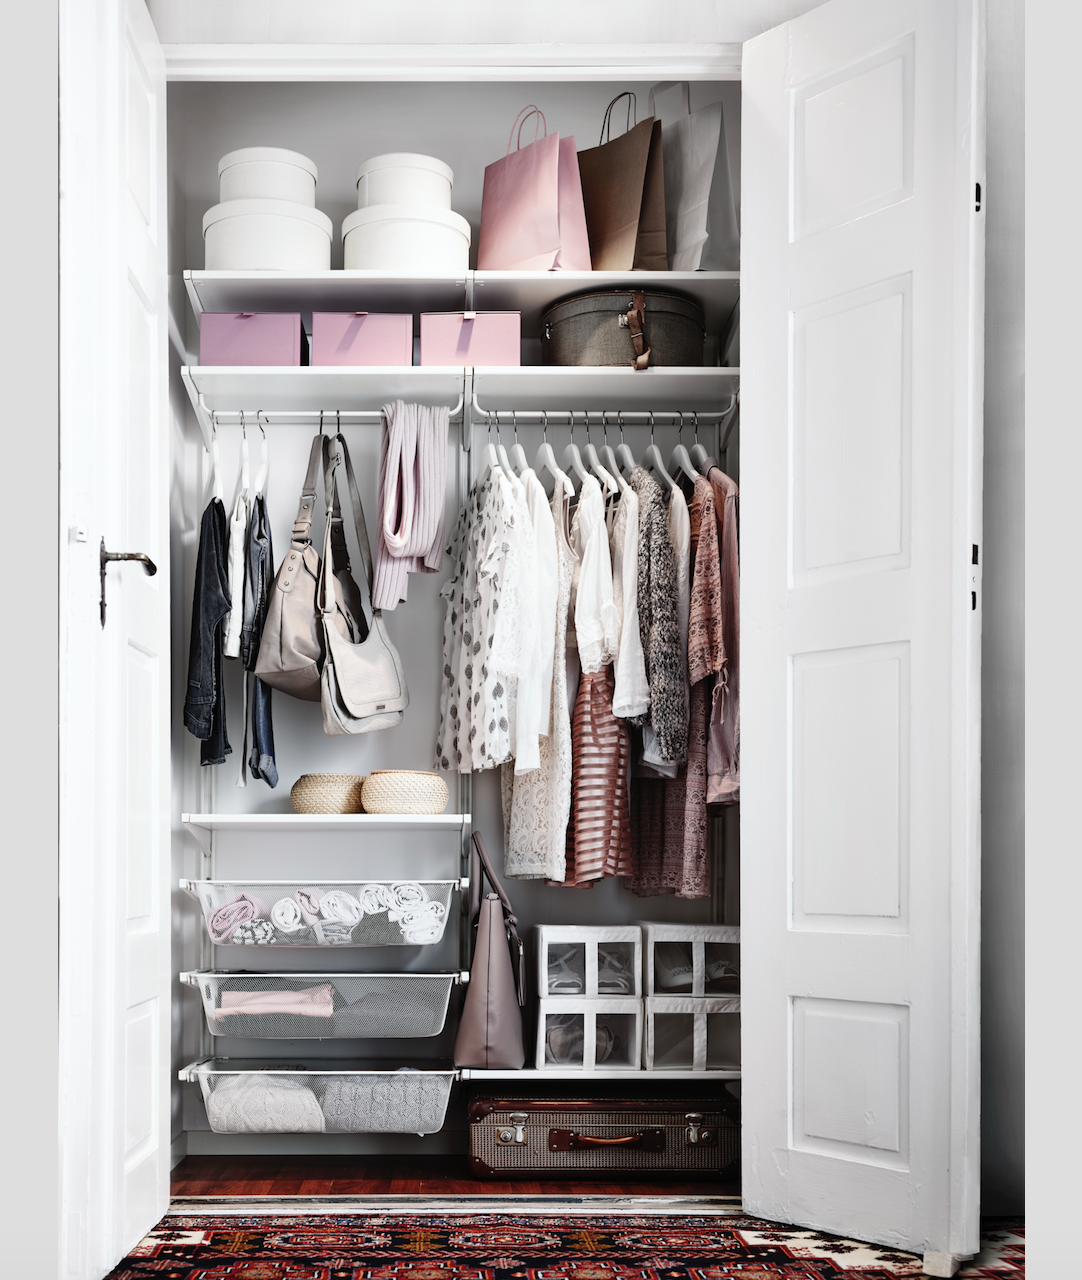 Clothes storage systems